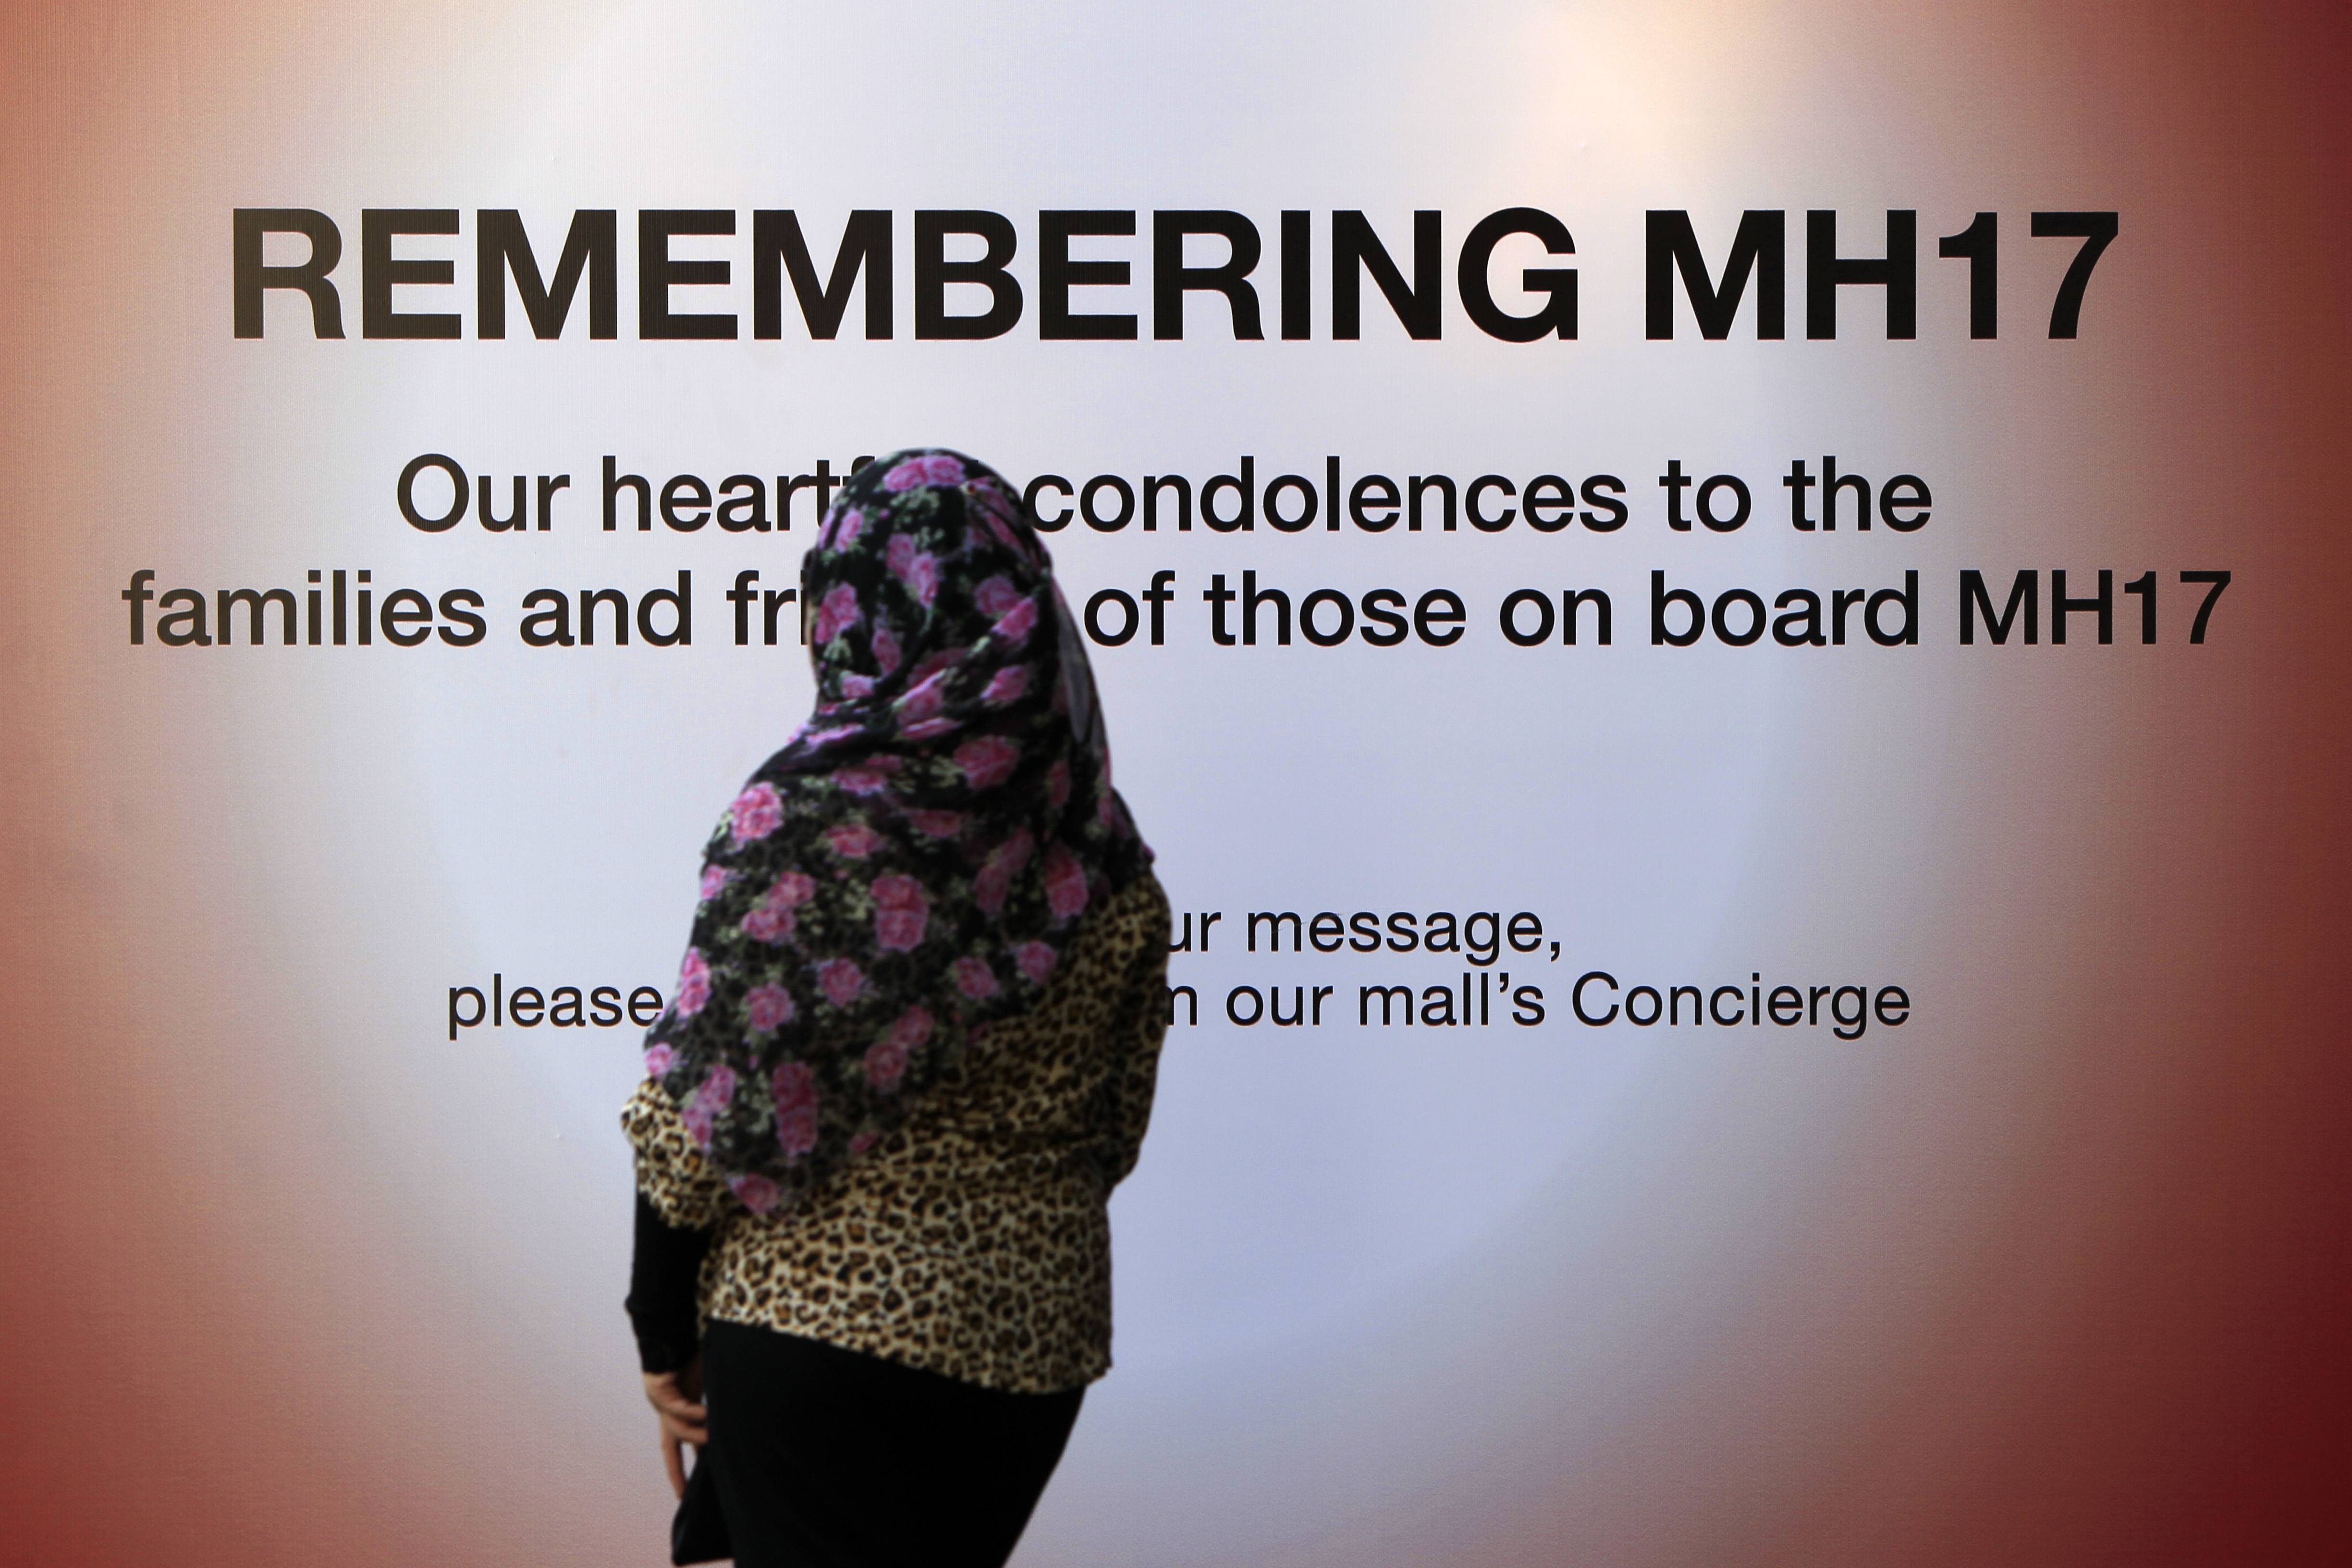 A woman walks past a message board for victims of the crashed Malaysia Airlines Flight 17, at a shopping mall in Kuala Lumpur, Malaysia, Sunday, July 20, 2014. Separatist rebels in Ukraine have recovered the black boxes from the downed Malaysia Airlines Flight 17 and will hand them over to the International Civil Aviation Organization, a rebel leader said Sunday.